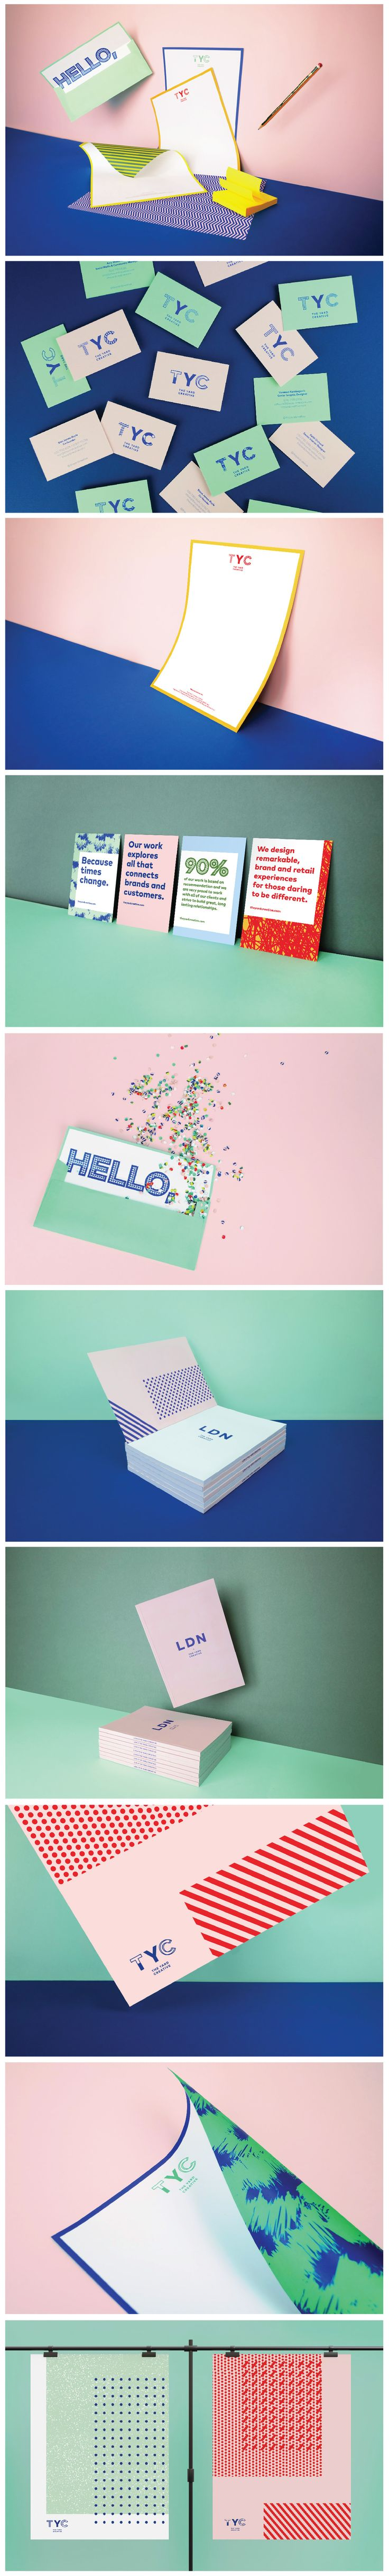 The Yard Creative self promotion and brand materials Graphic Design Logo Design Stationary